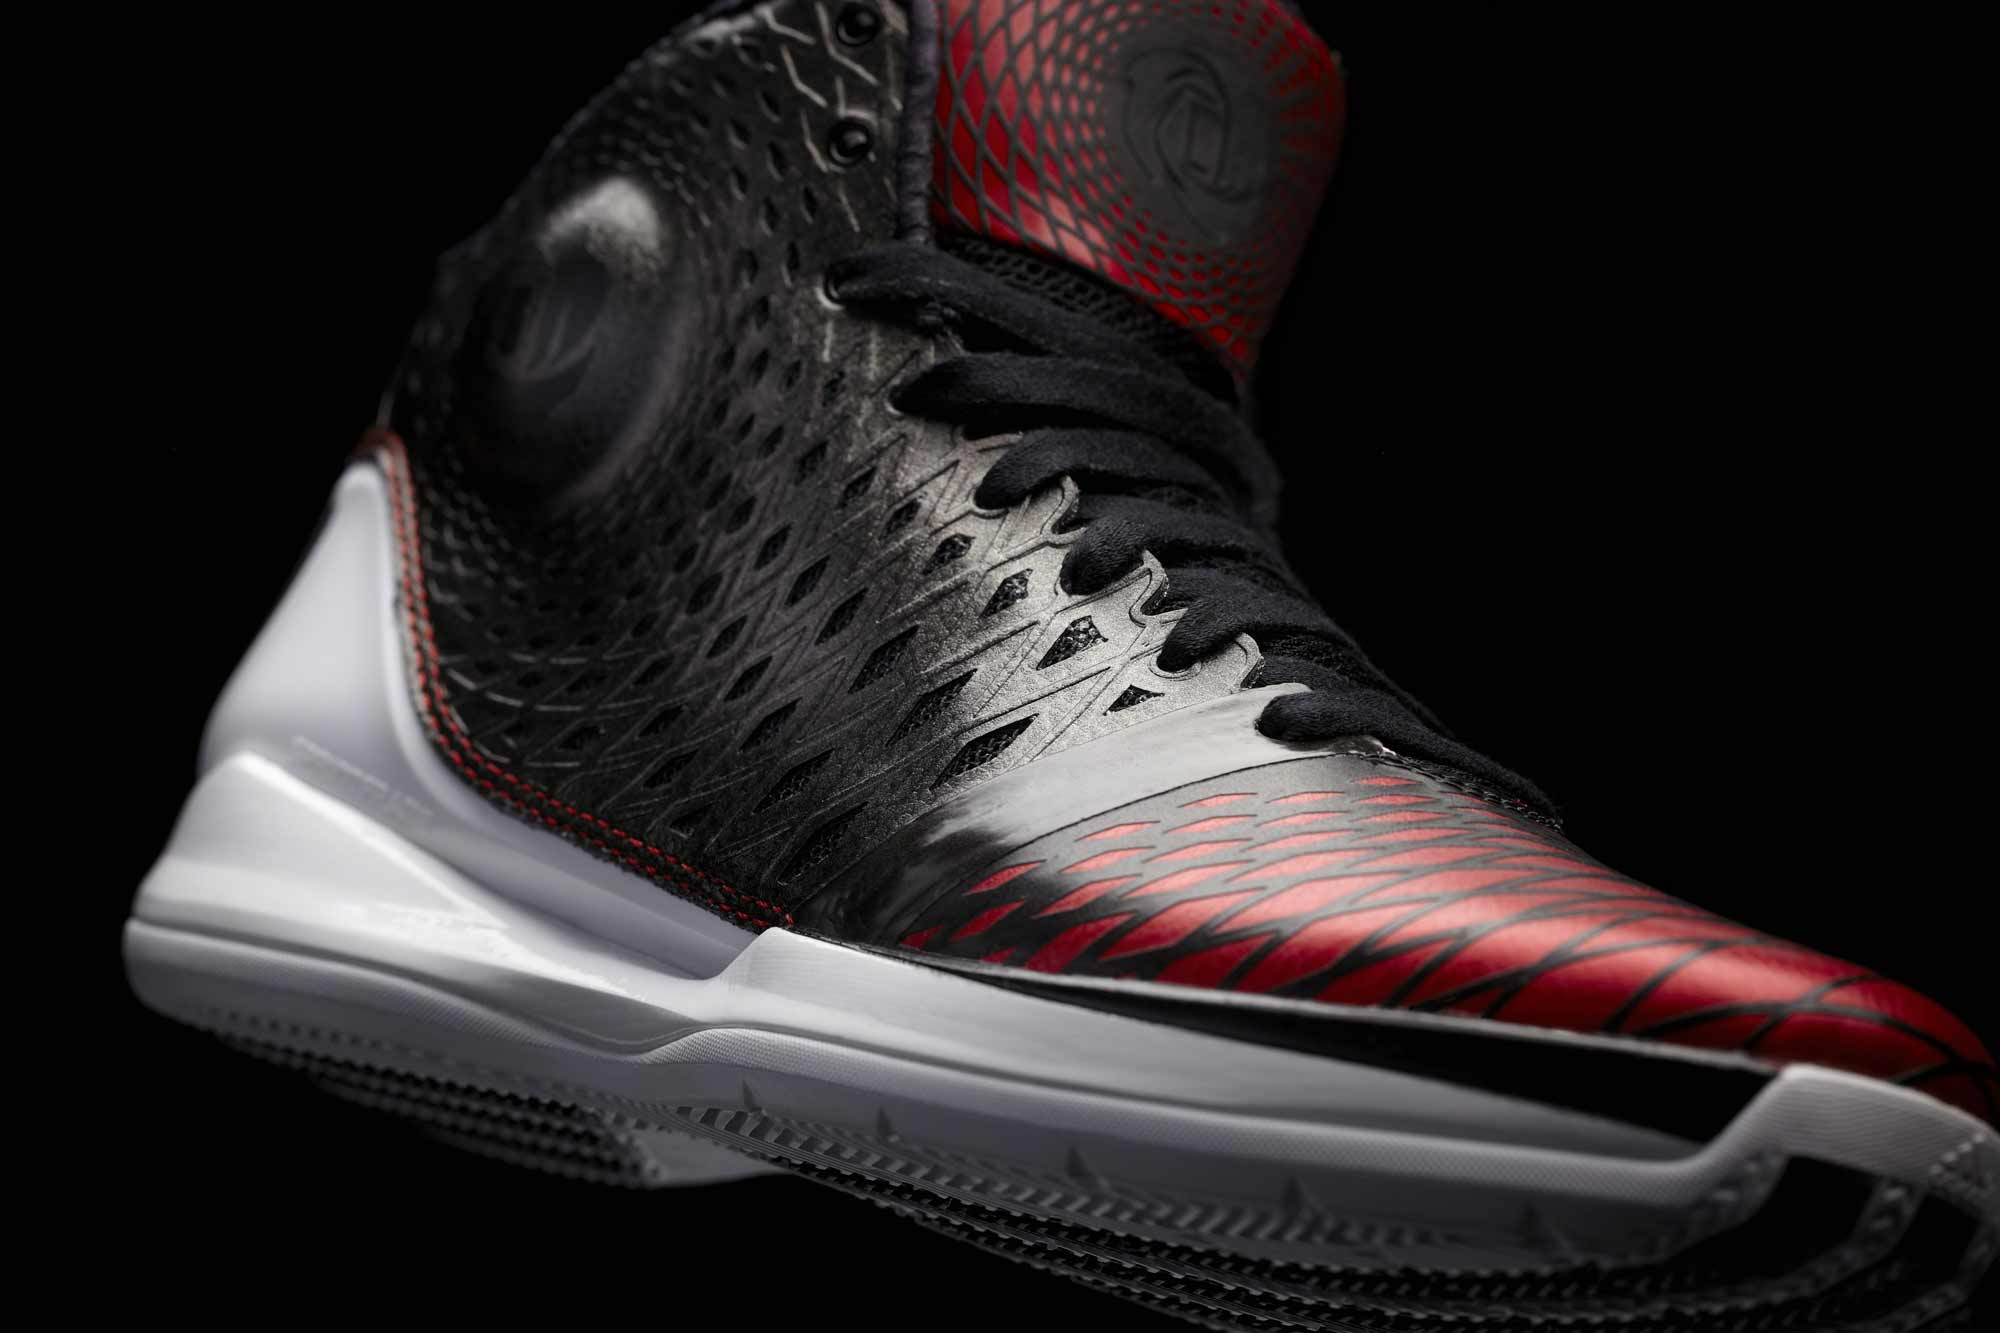 e67c3efe222f adidas and Derrick Rose launch D Rose 3.5 Signature Basketball Shoe ...